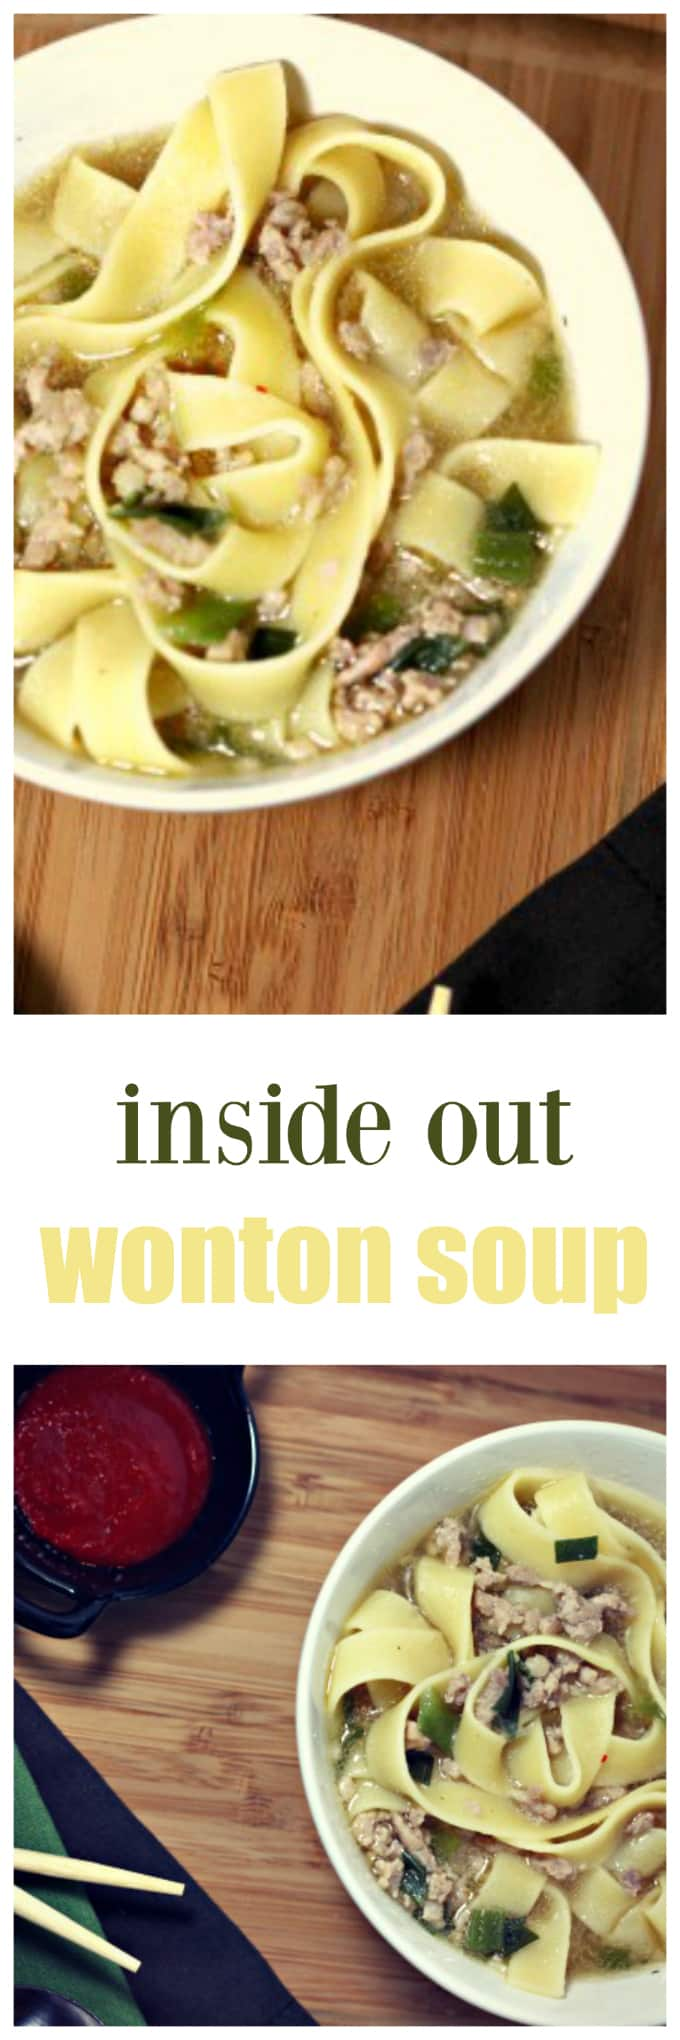 inside out wonton soup @createdbydiane